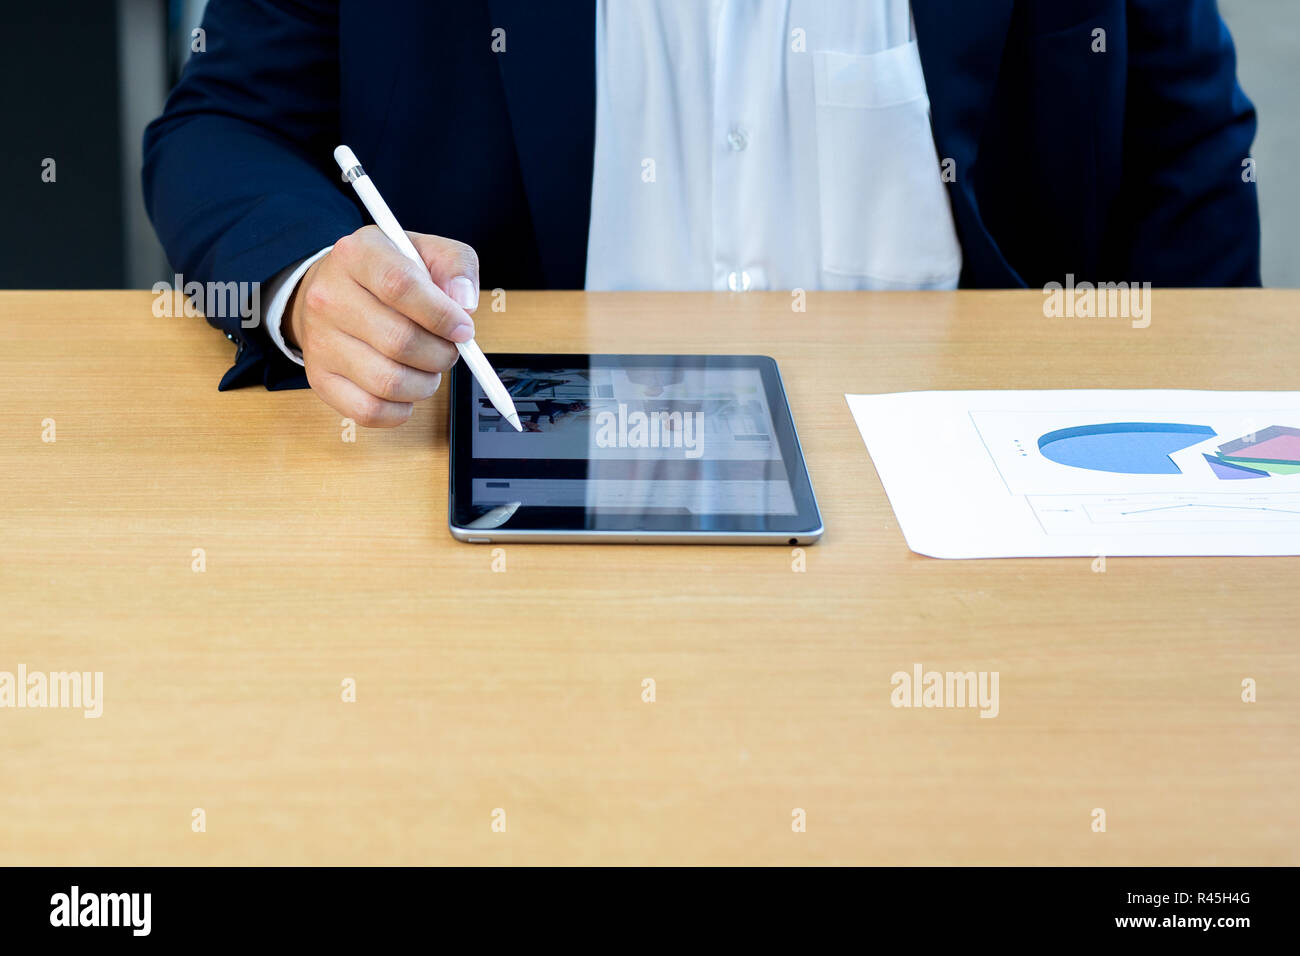 Businessman using digital tablet pen on notped with paper stock chart on desk. - Stock Image